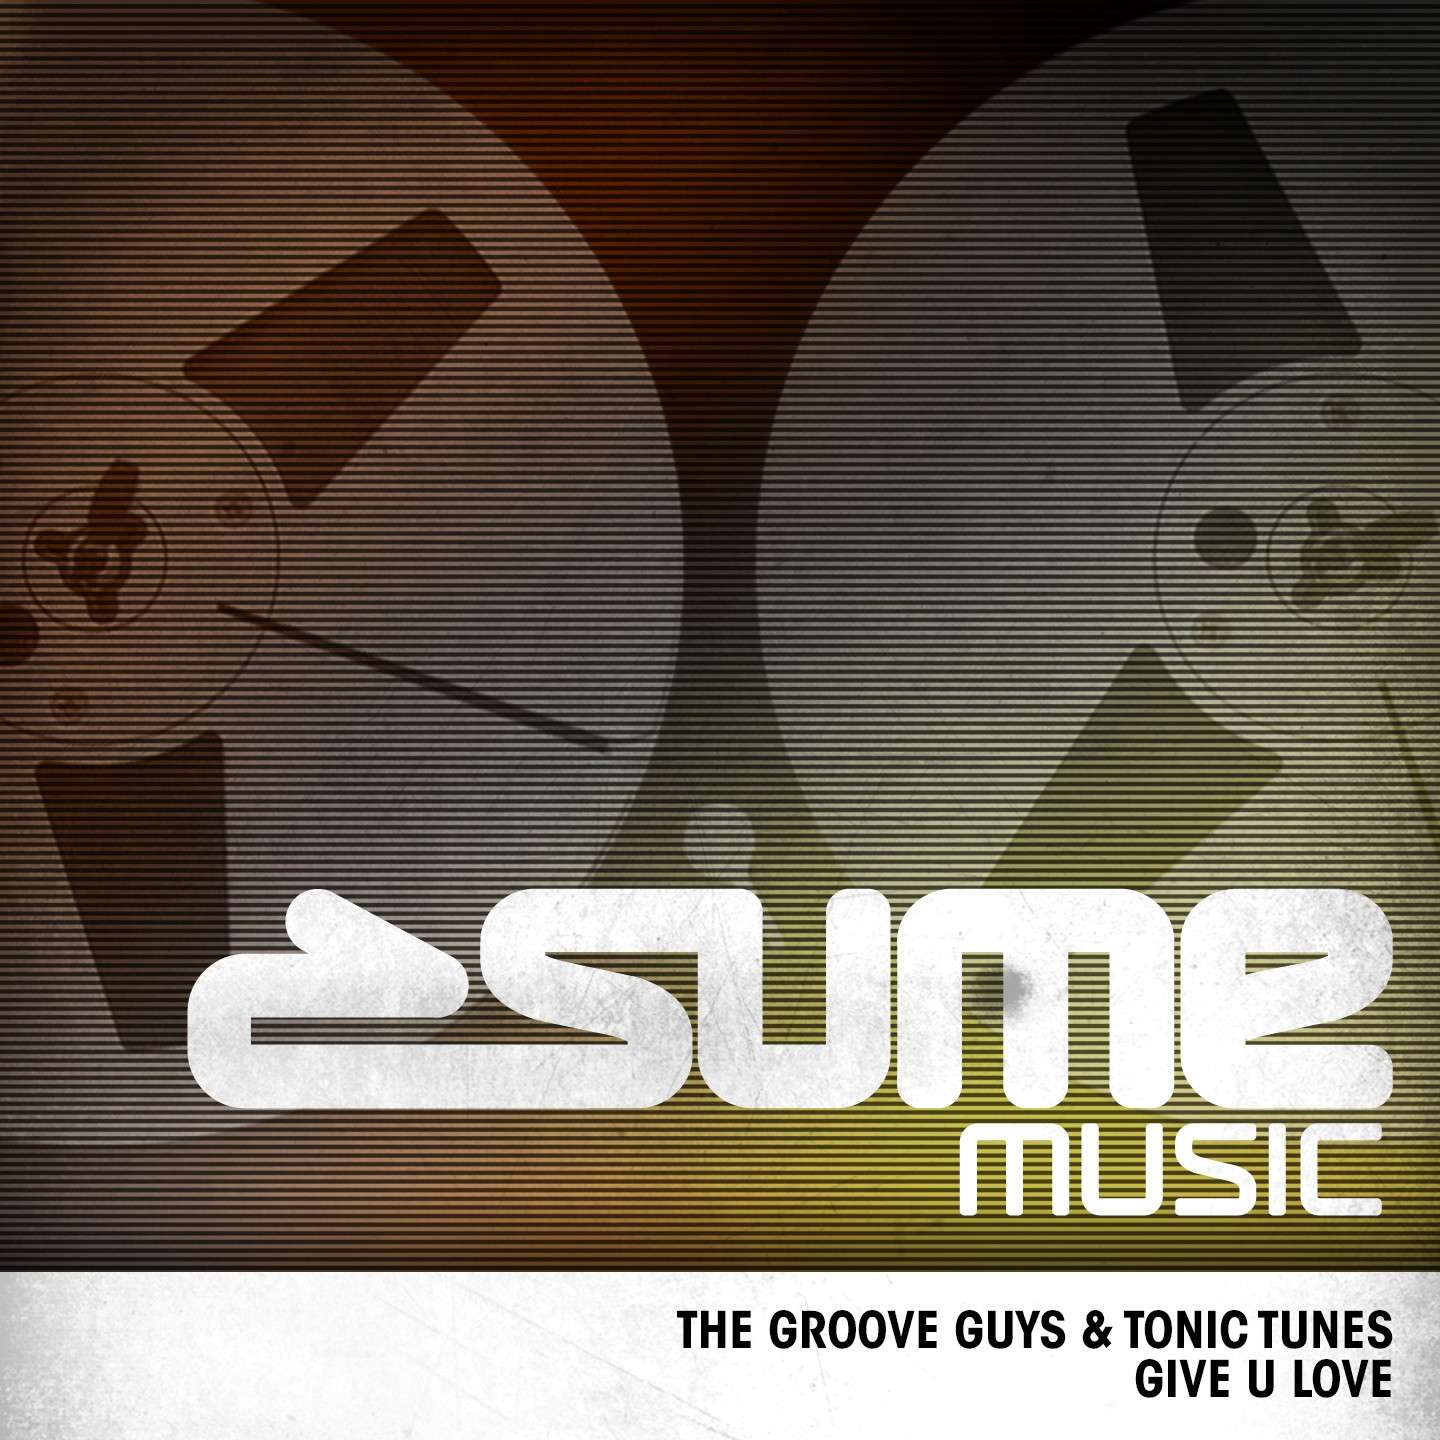 The Groove Guys & Tonic Tunes –